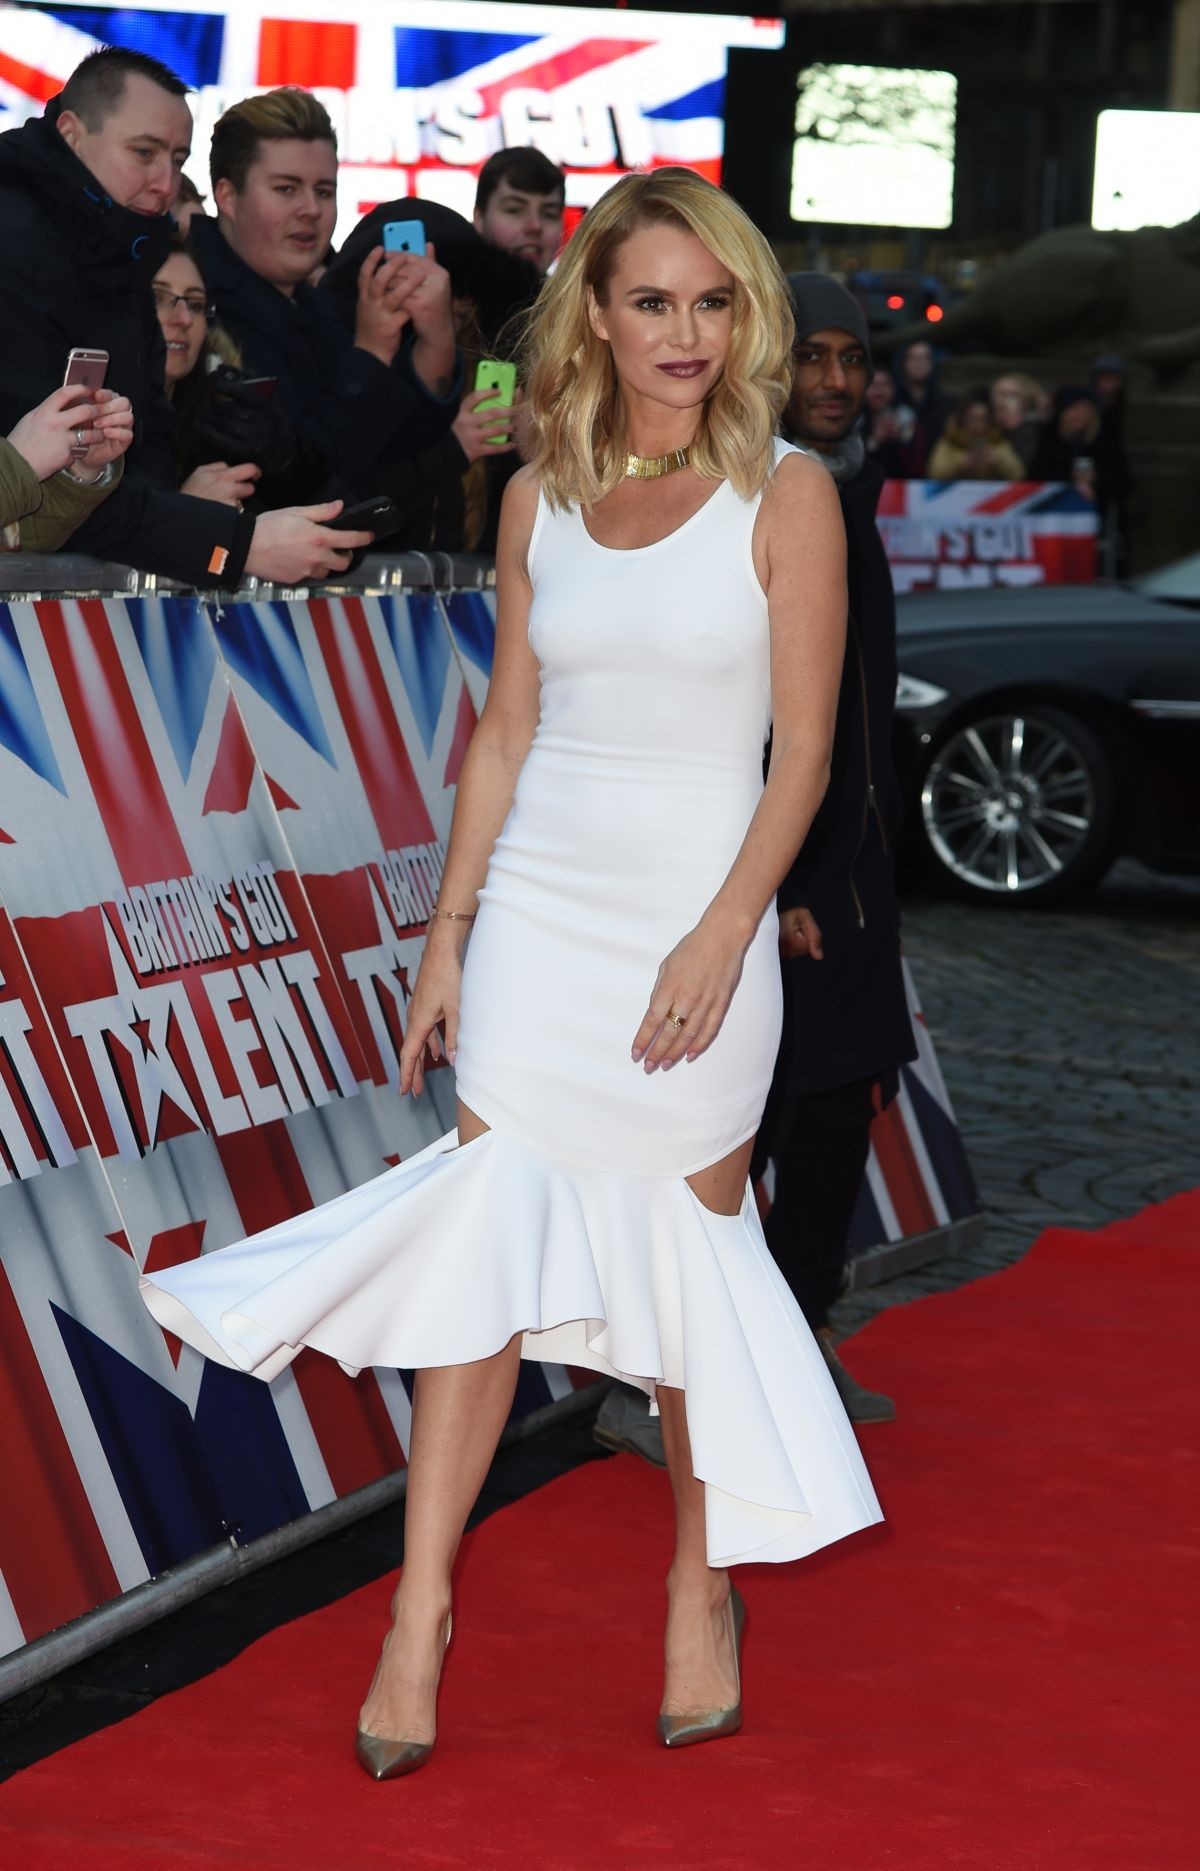 Amanda holden britains got talent - 2019 year